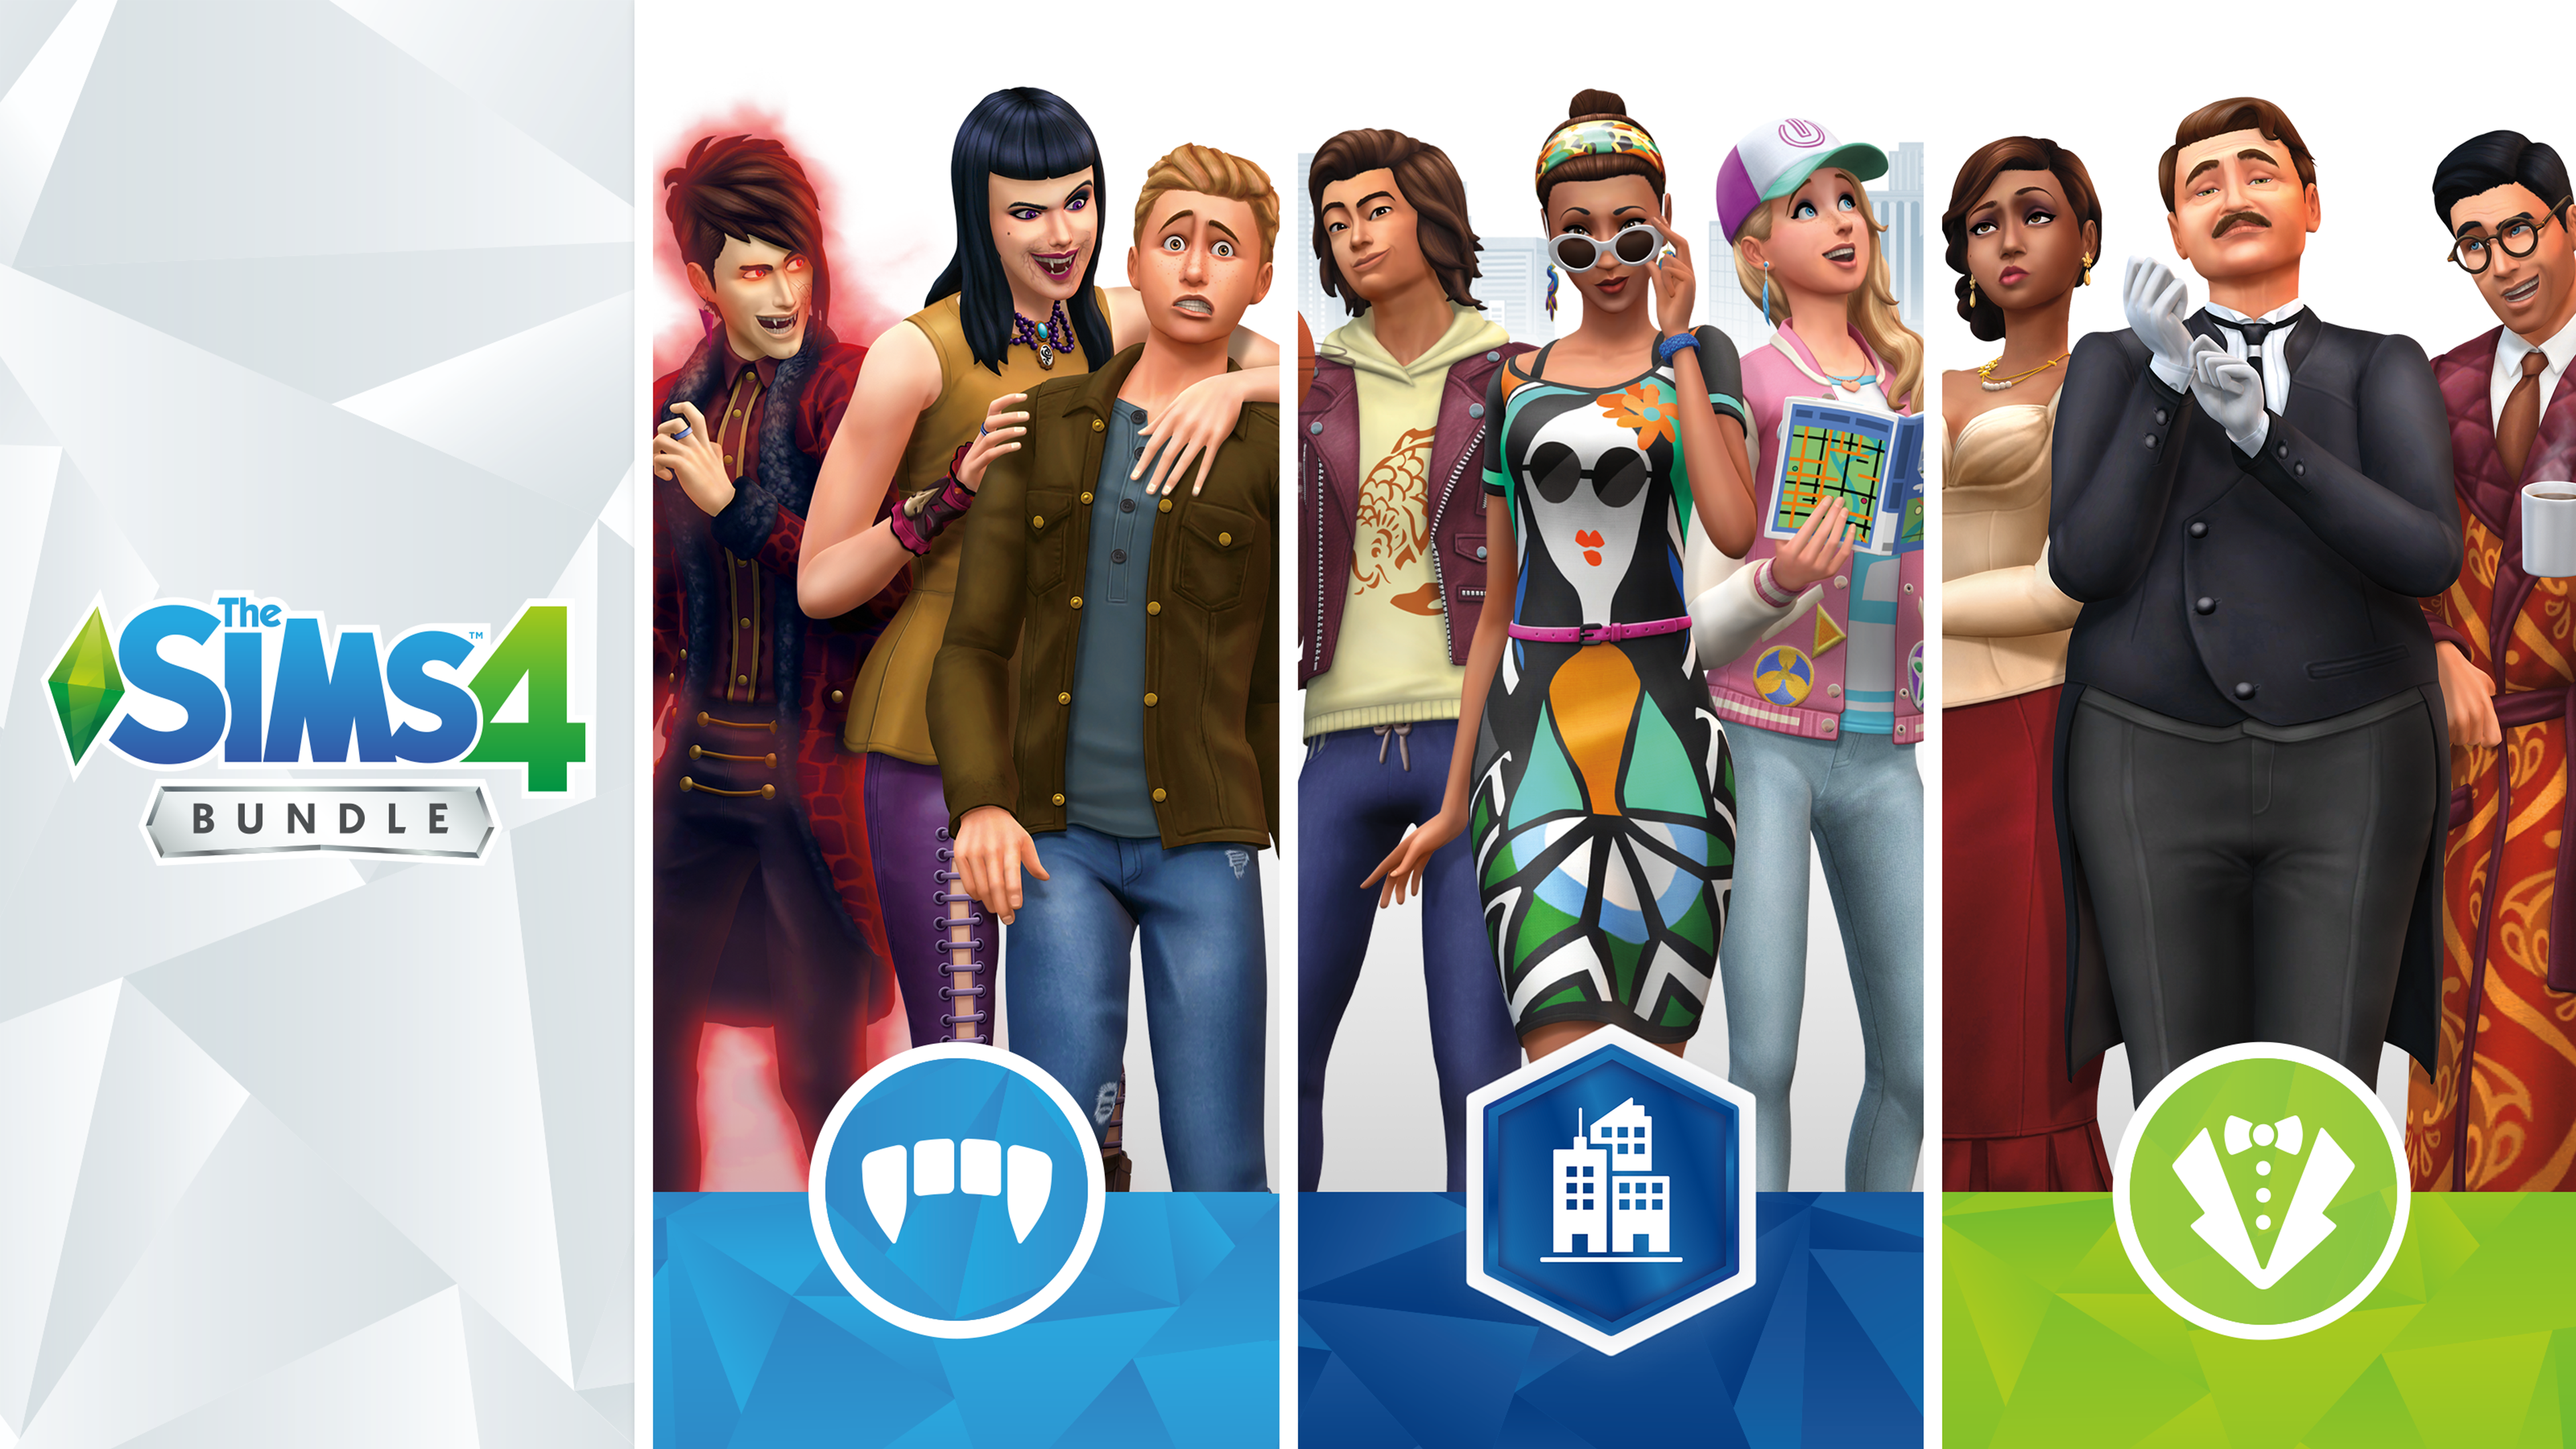 The Sims 4: Game Bundle Coming To PlayStation4 And Xbox